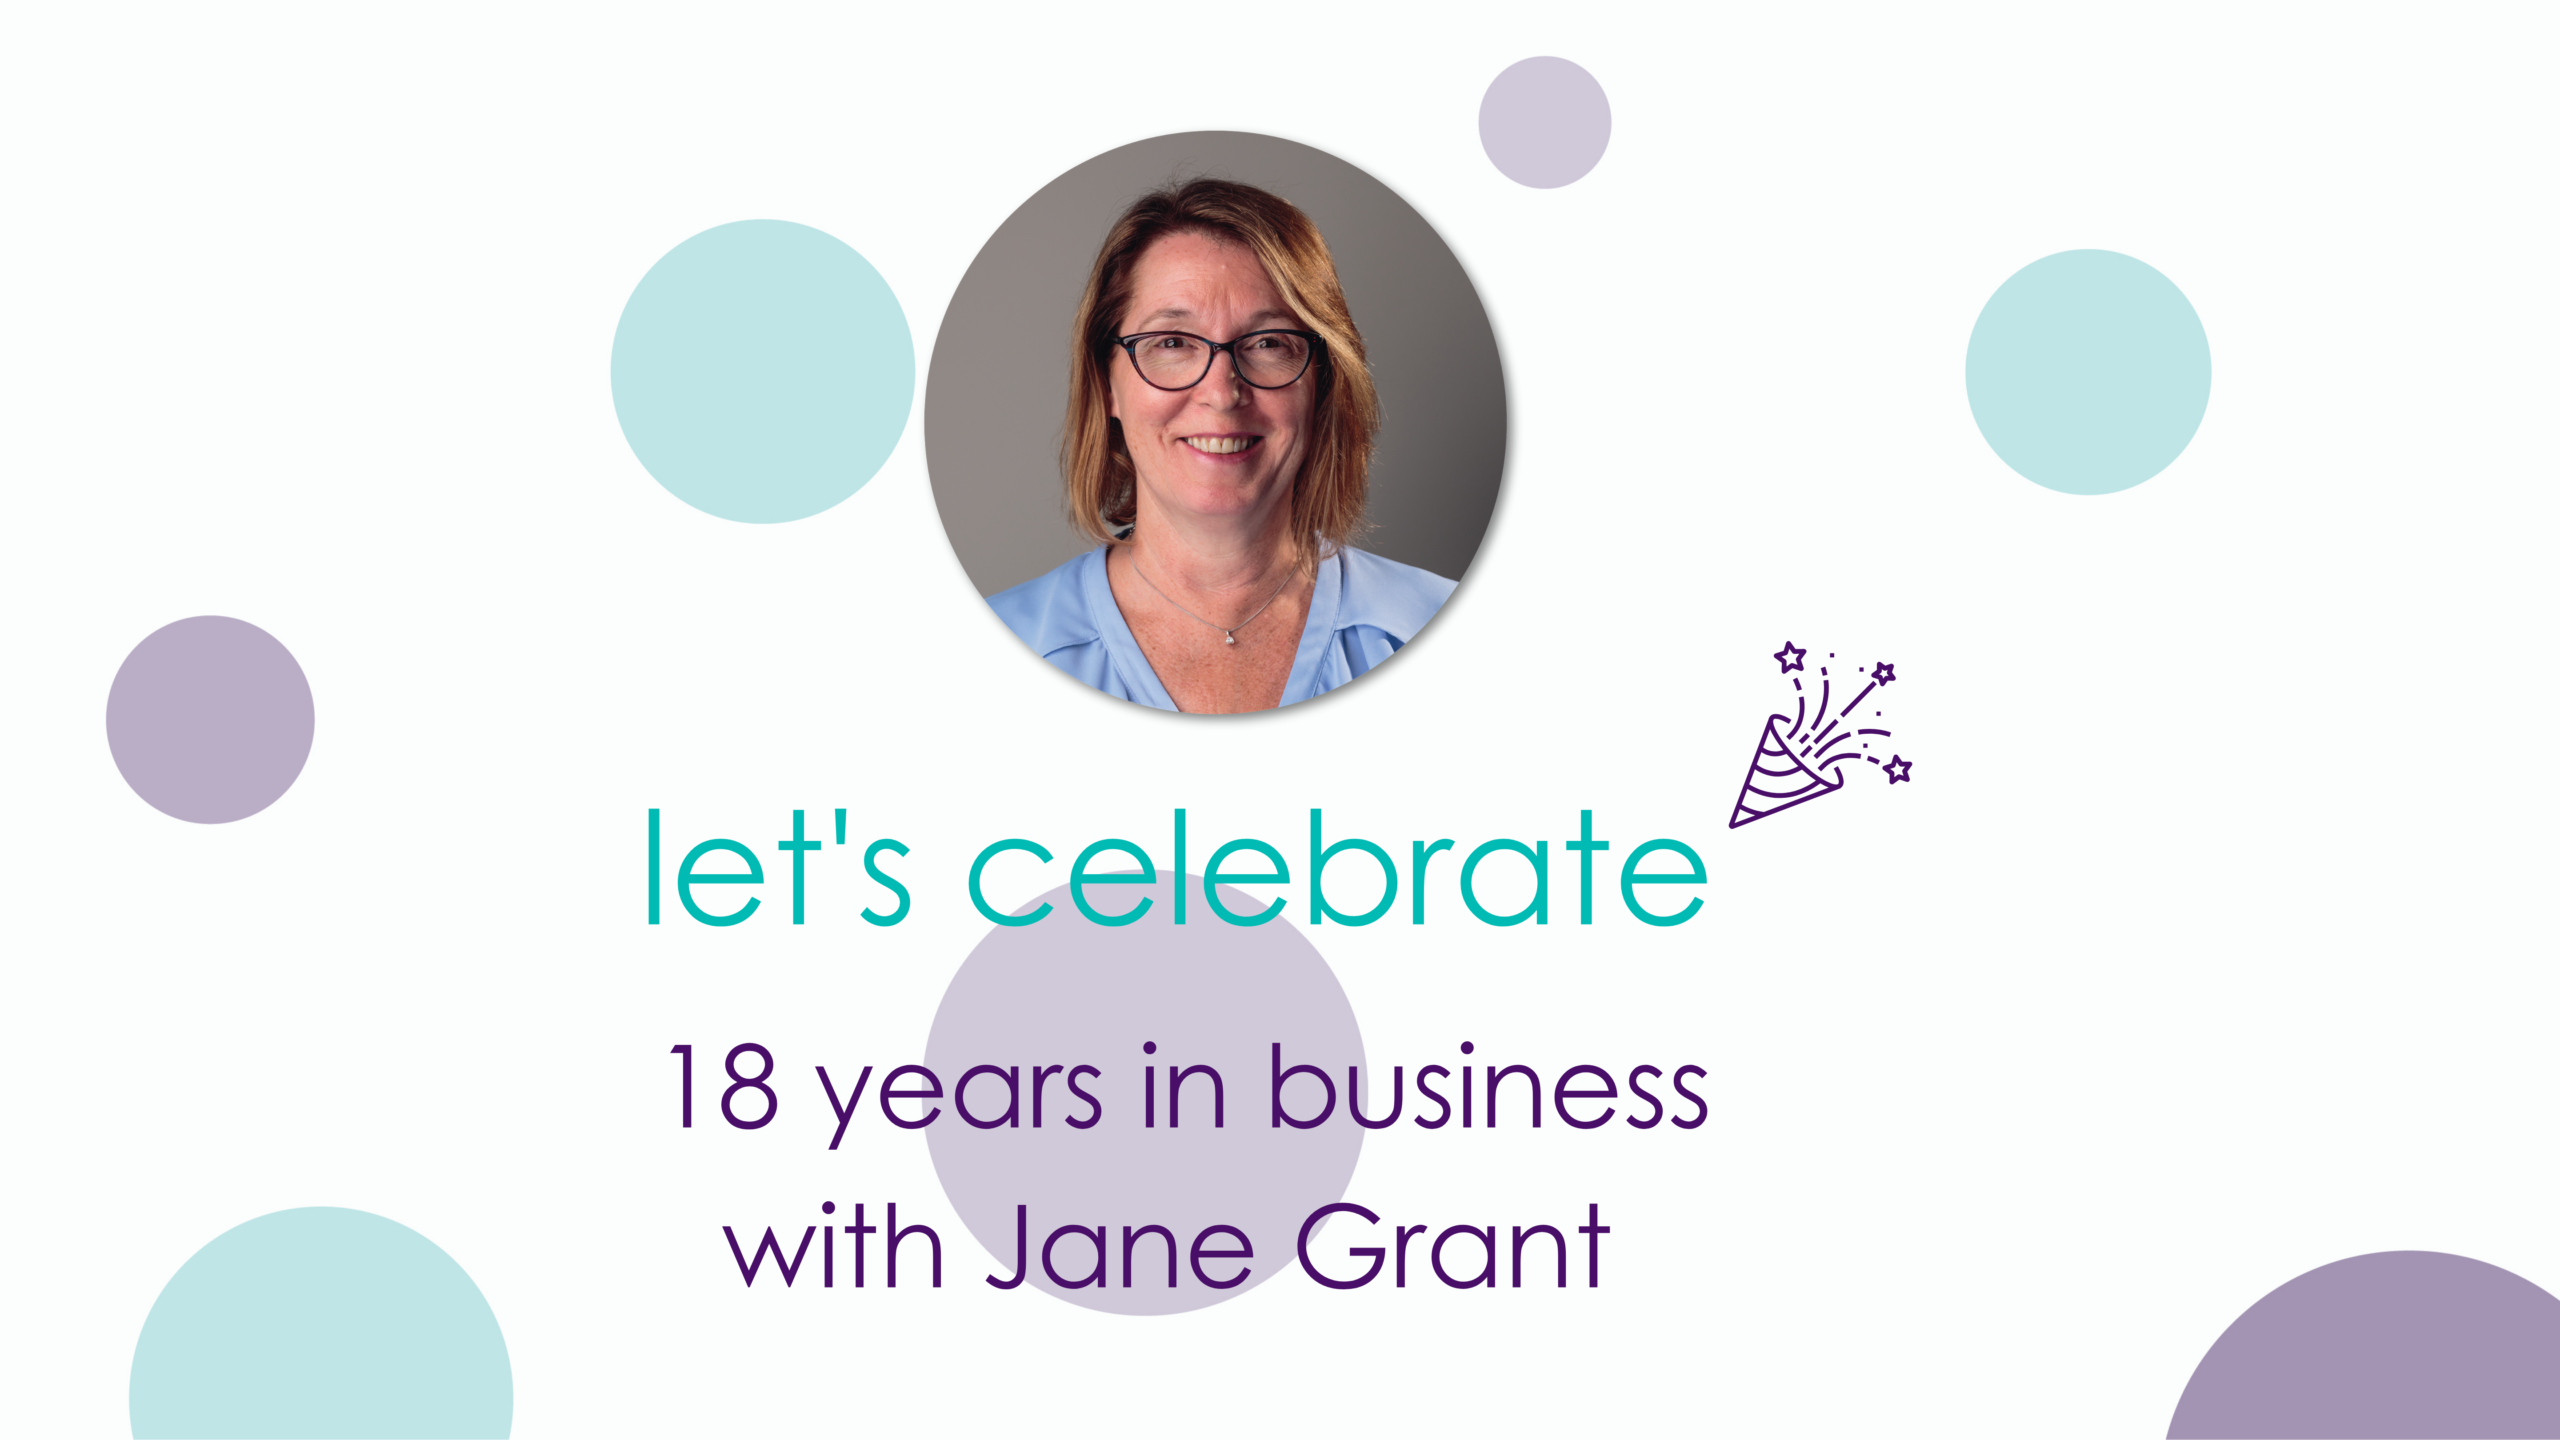 LET'S CELEBRATE 18 YEARS WITH JANE GRANT